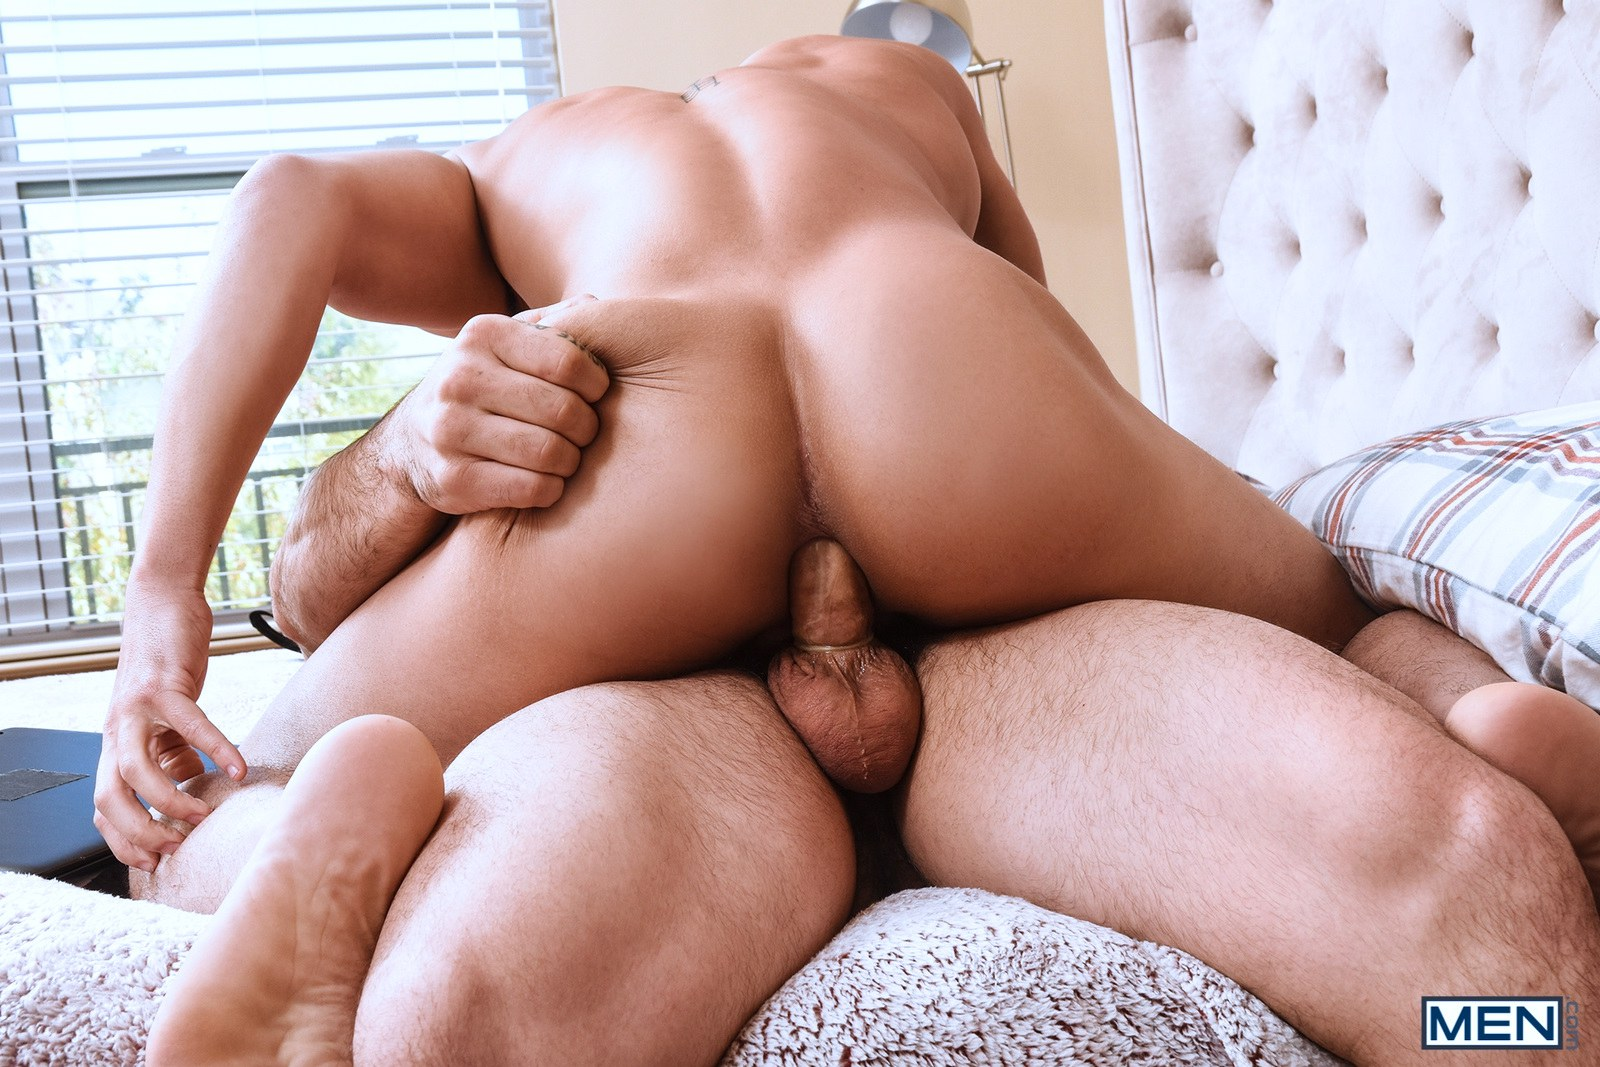 Gay men having hardcore anal sex